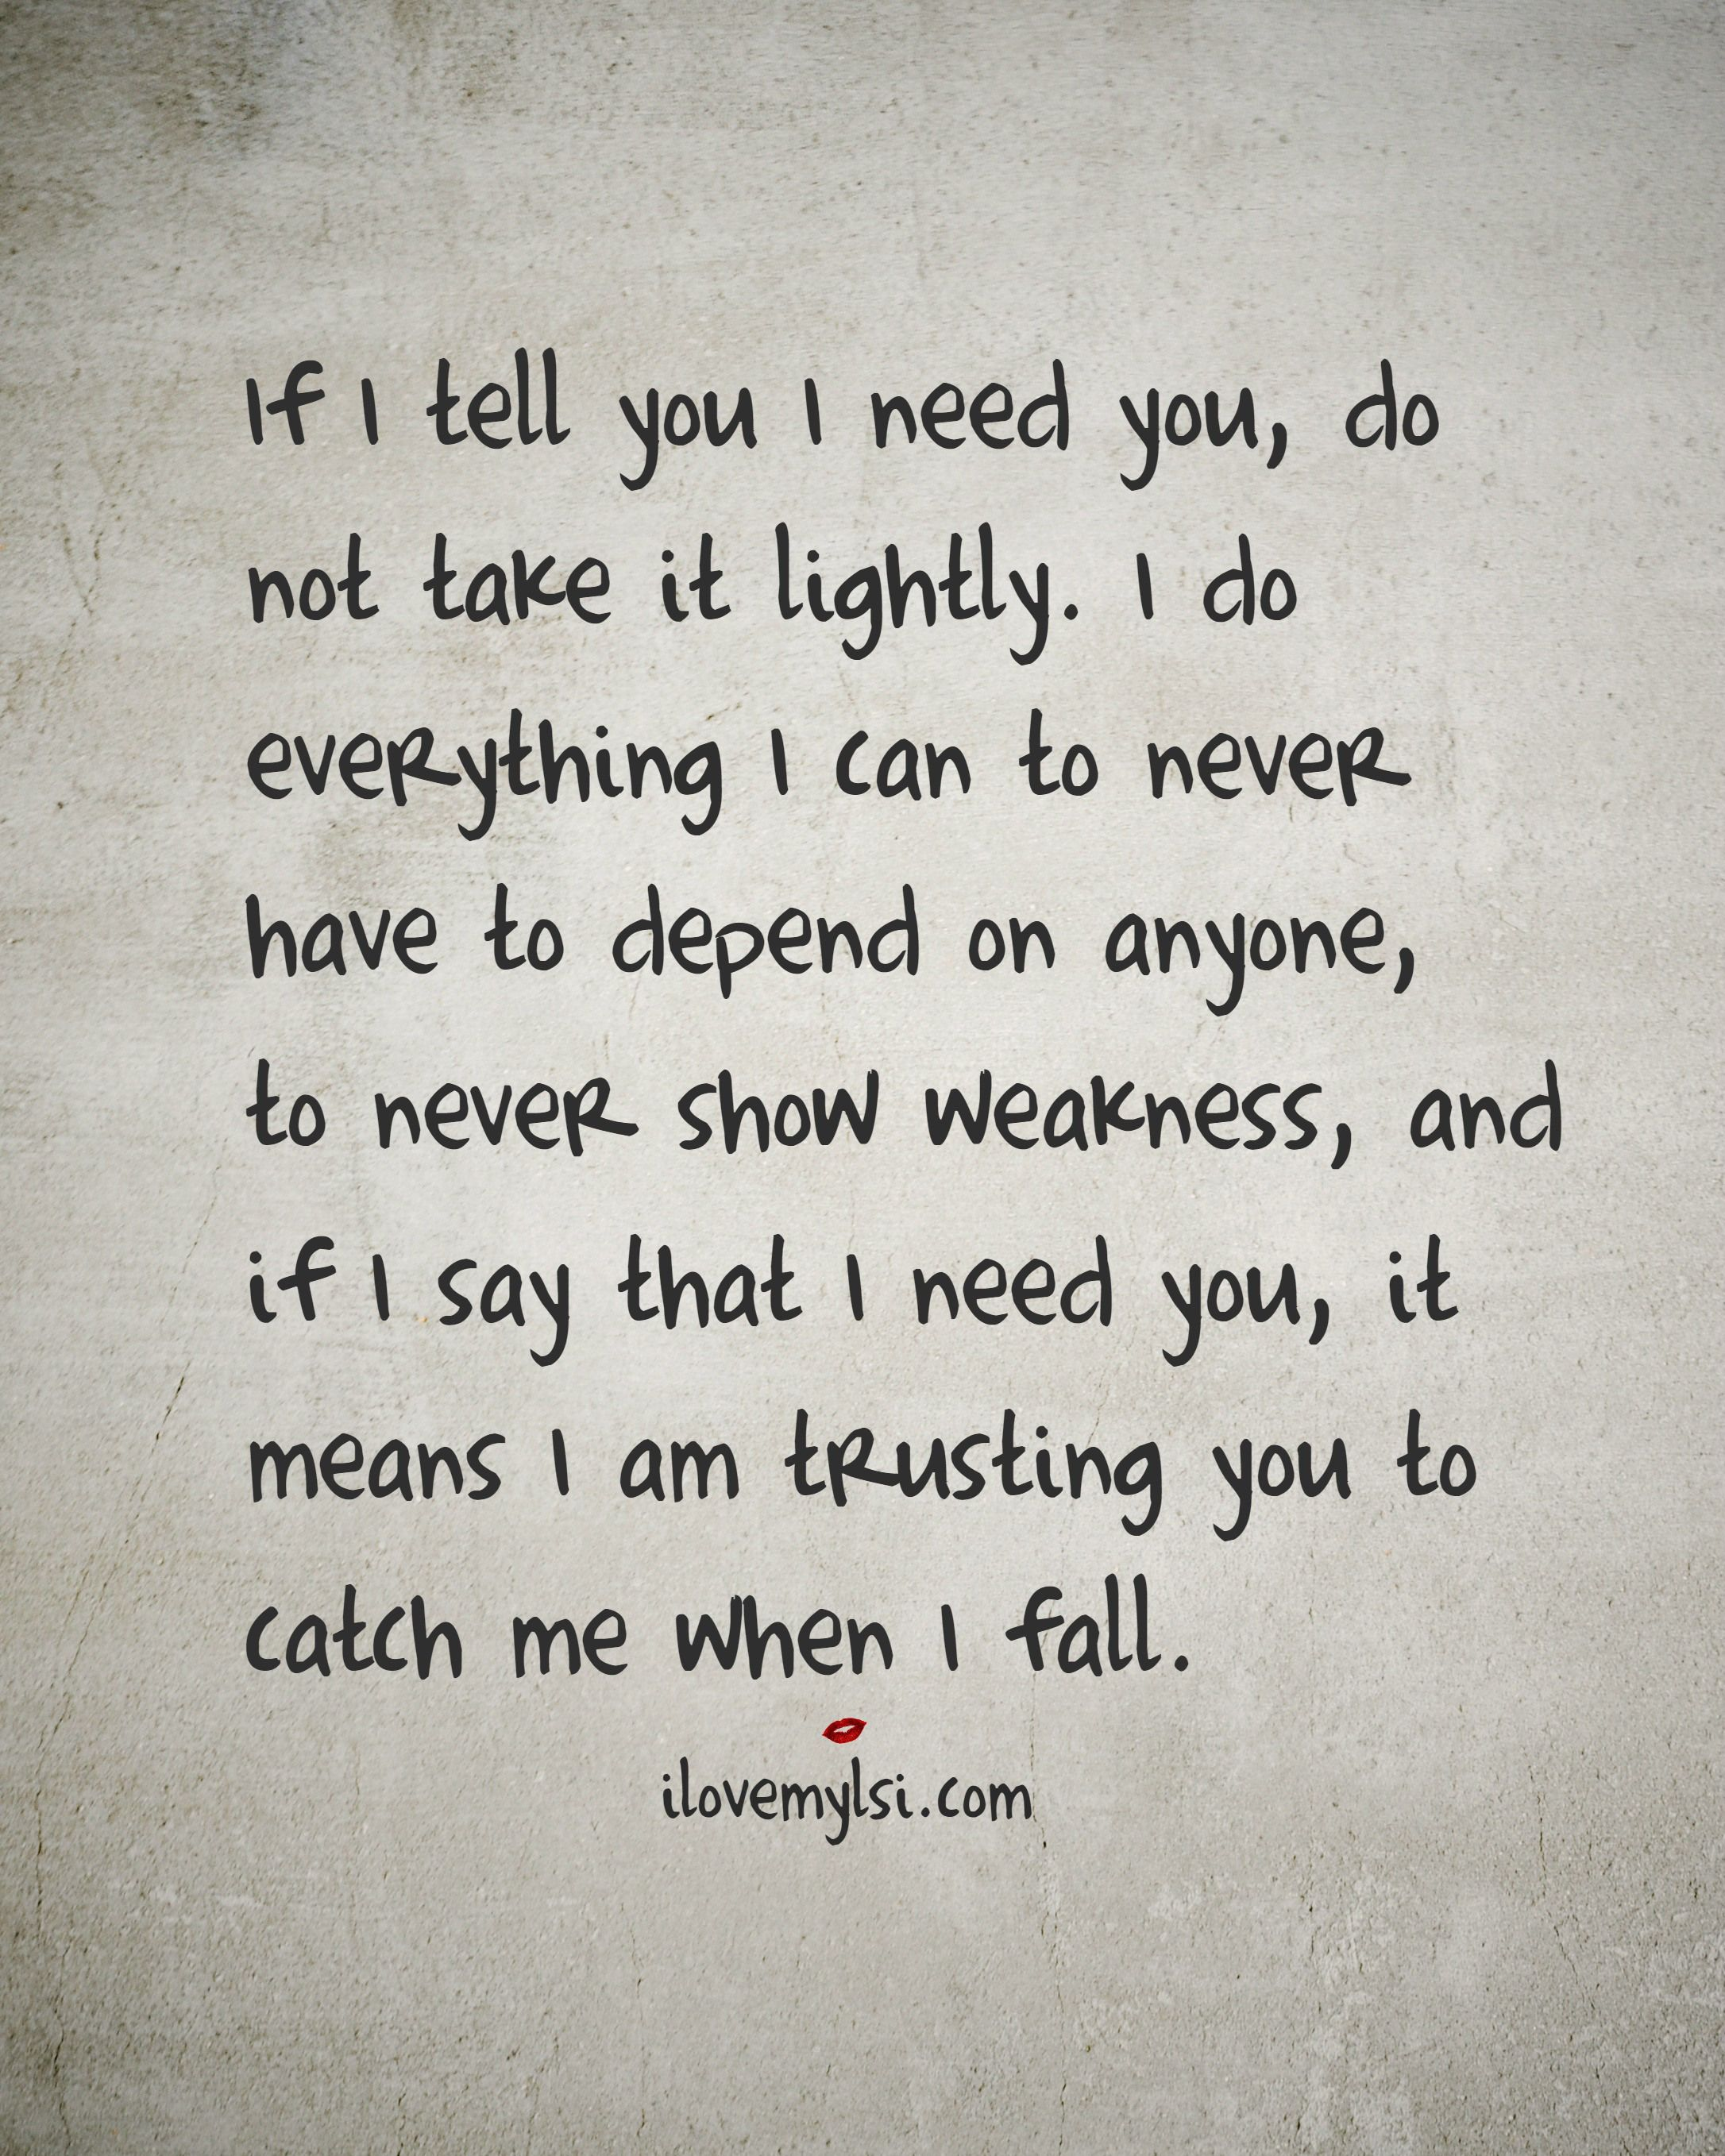 I Appreciate You Quotes For Loved Ones If I Tell You I Need You Do Not Take It Lightly  Trust